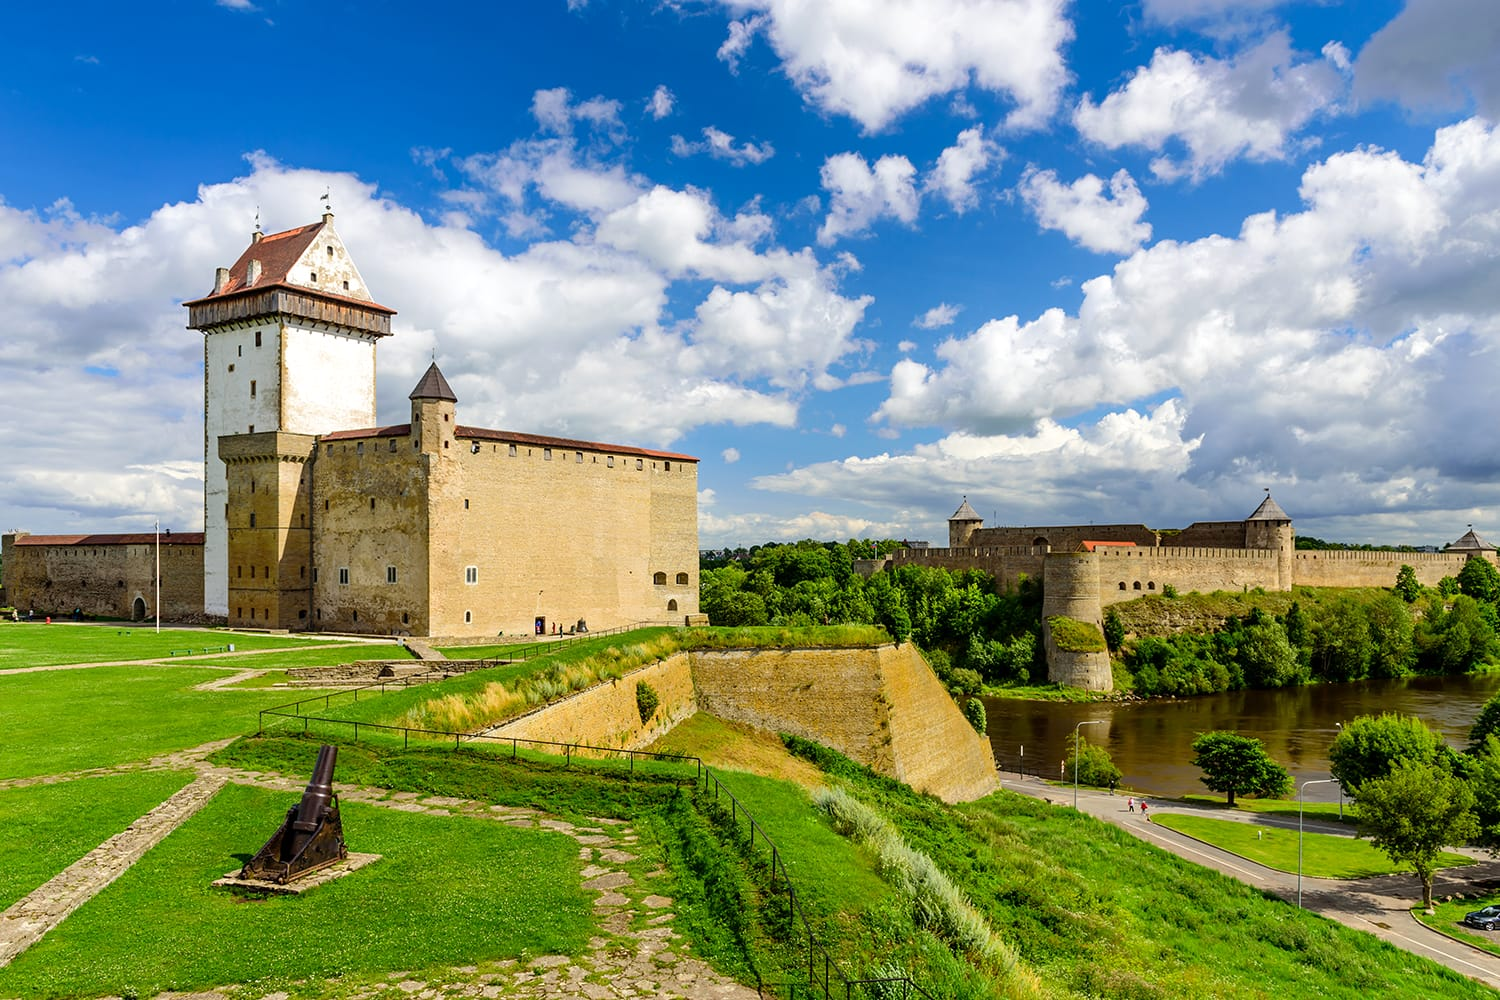 Beautiful summer view of Narva Castle with tall Herman's tower and the ancient Russian fortress in Ivangorod, the monument and popular tourist attraction